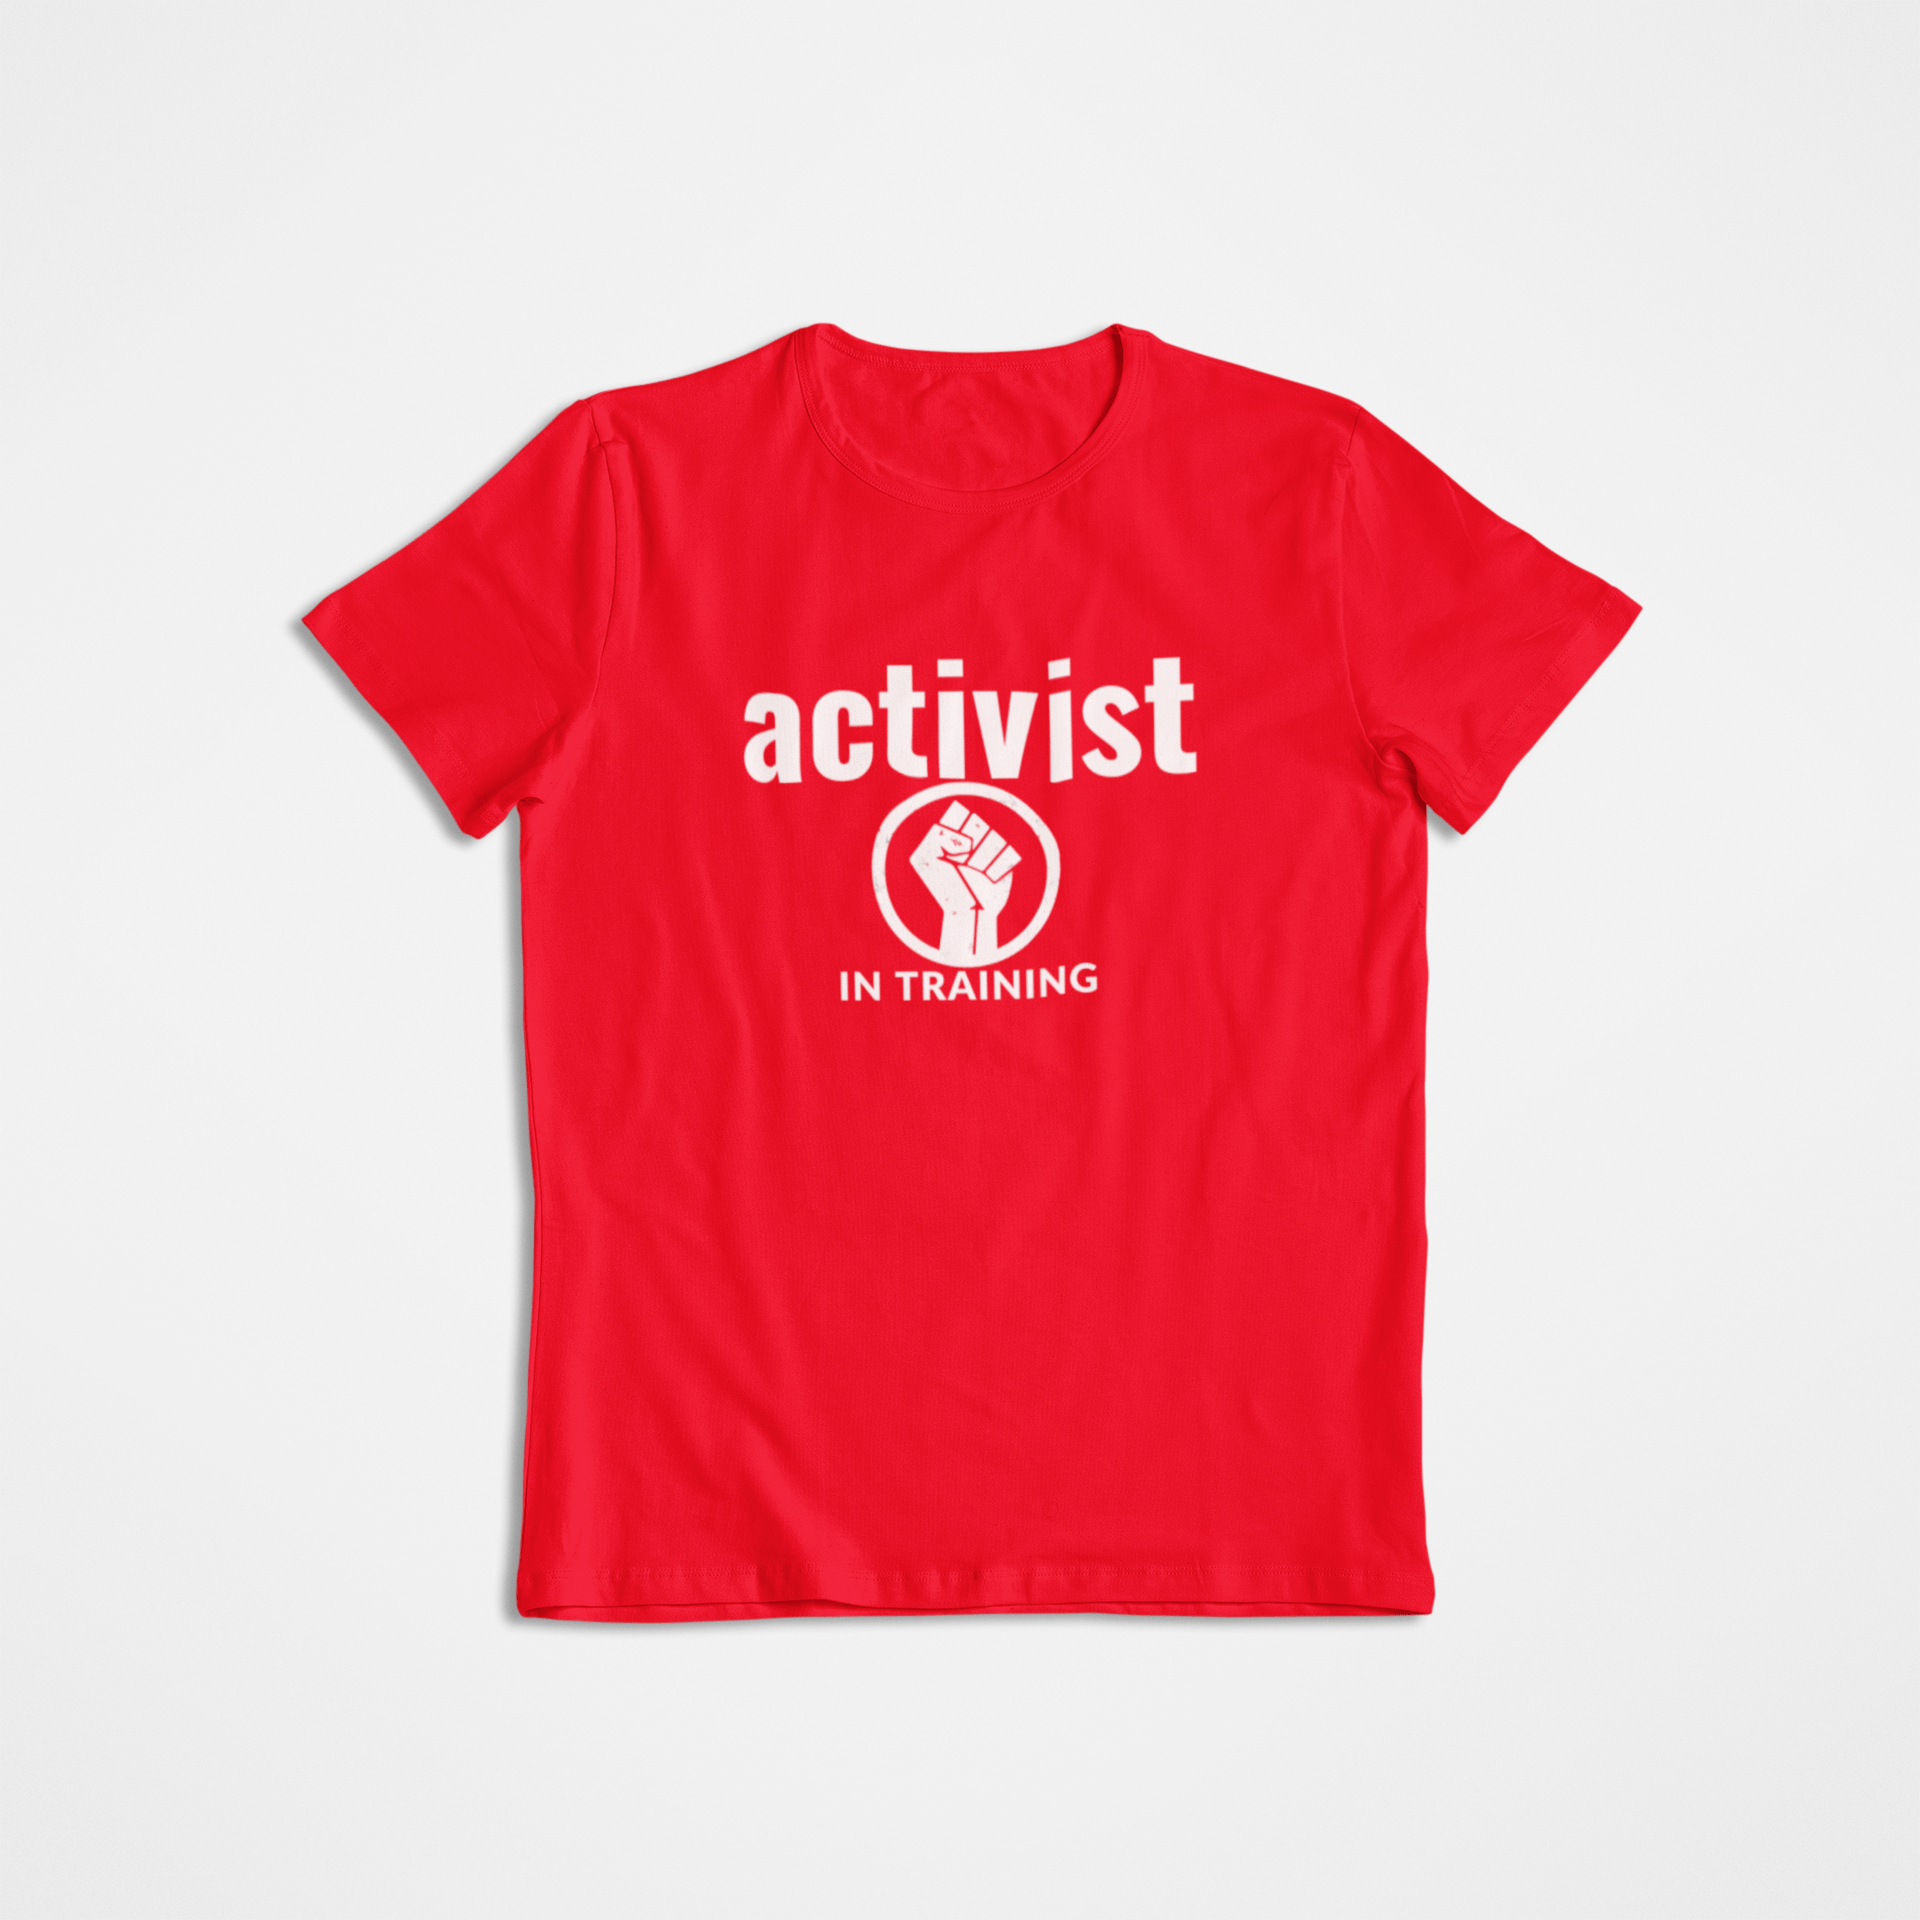 Activist In Training Youth Tee